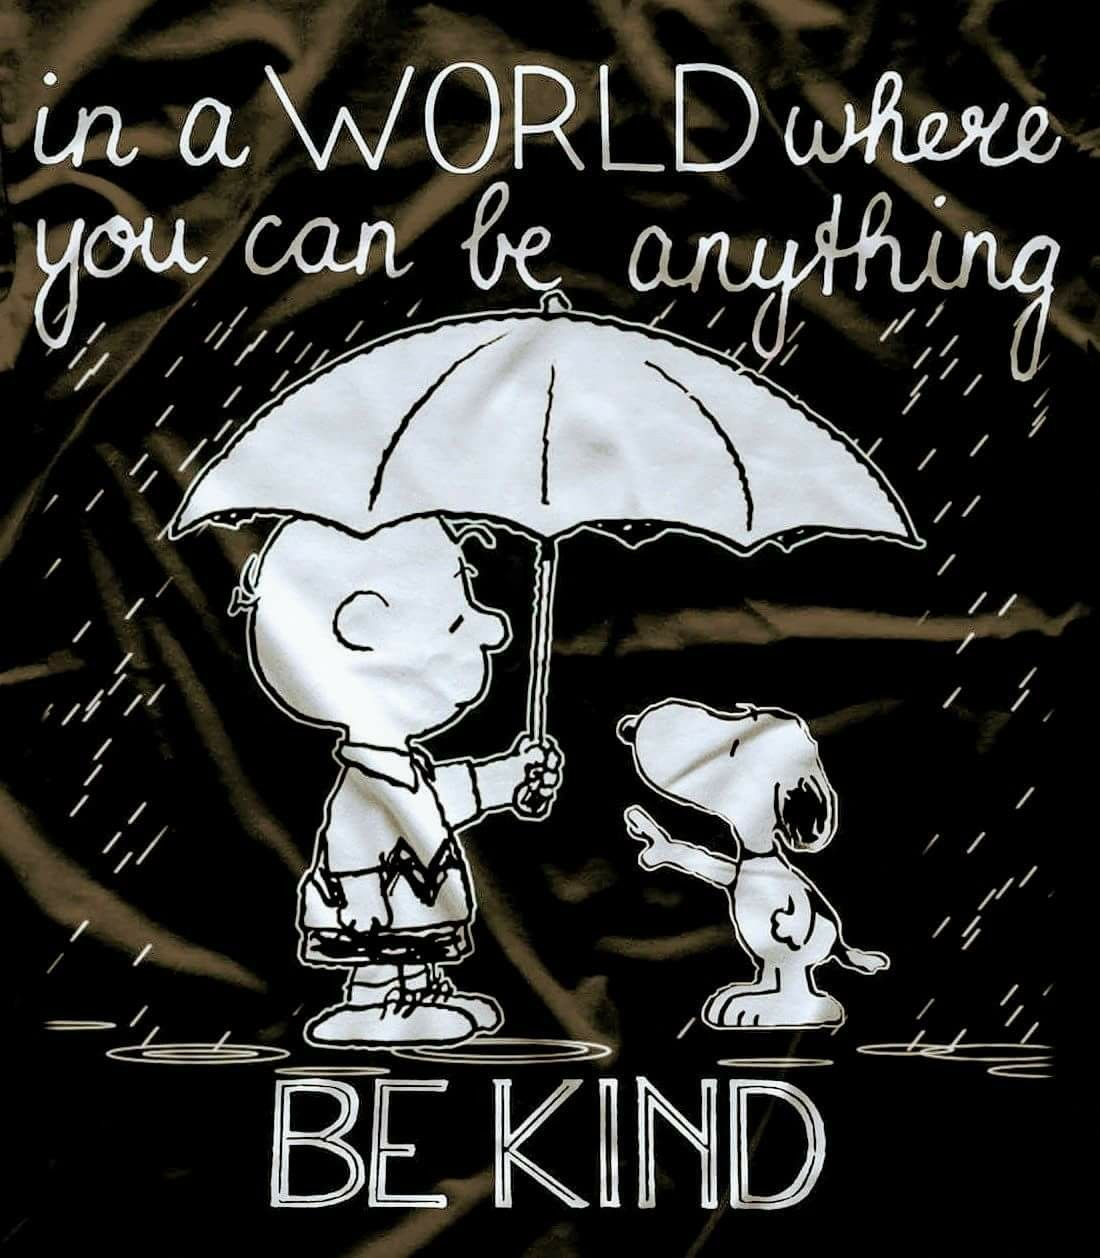 Image result for snoopy in a world where you can be anything be kind